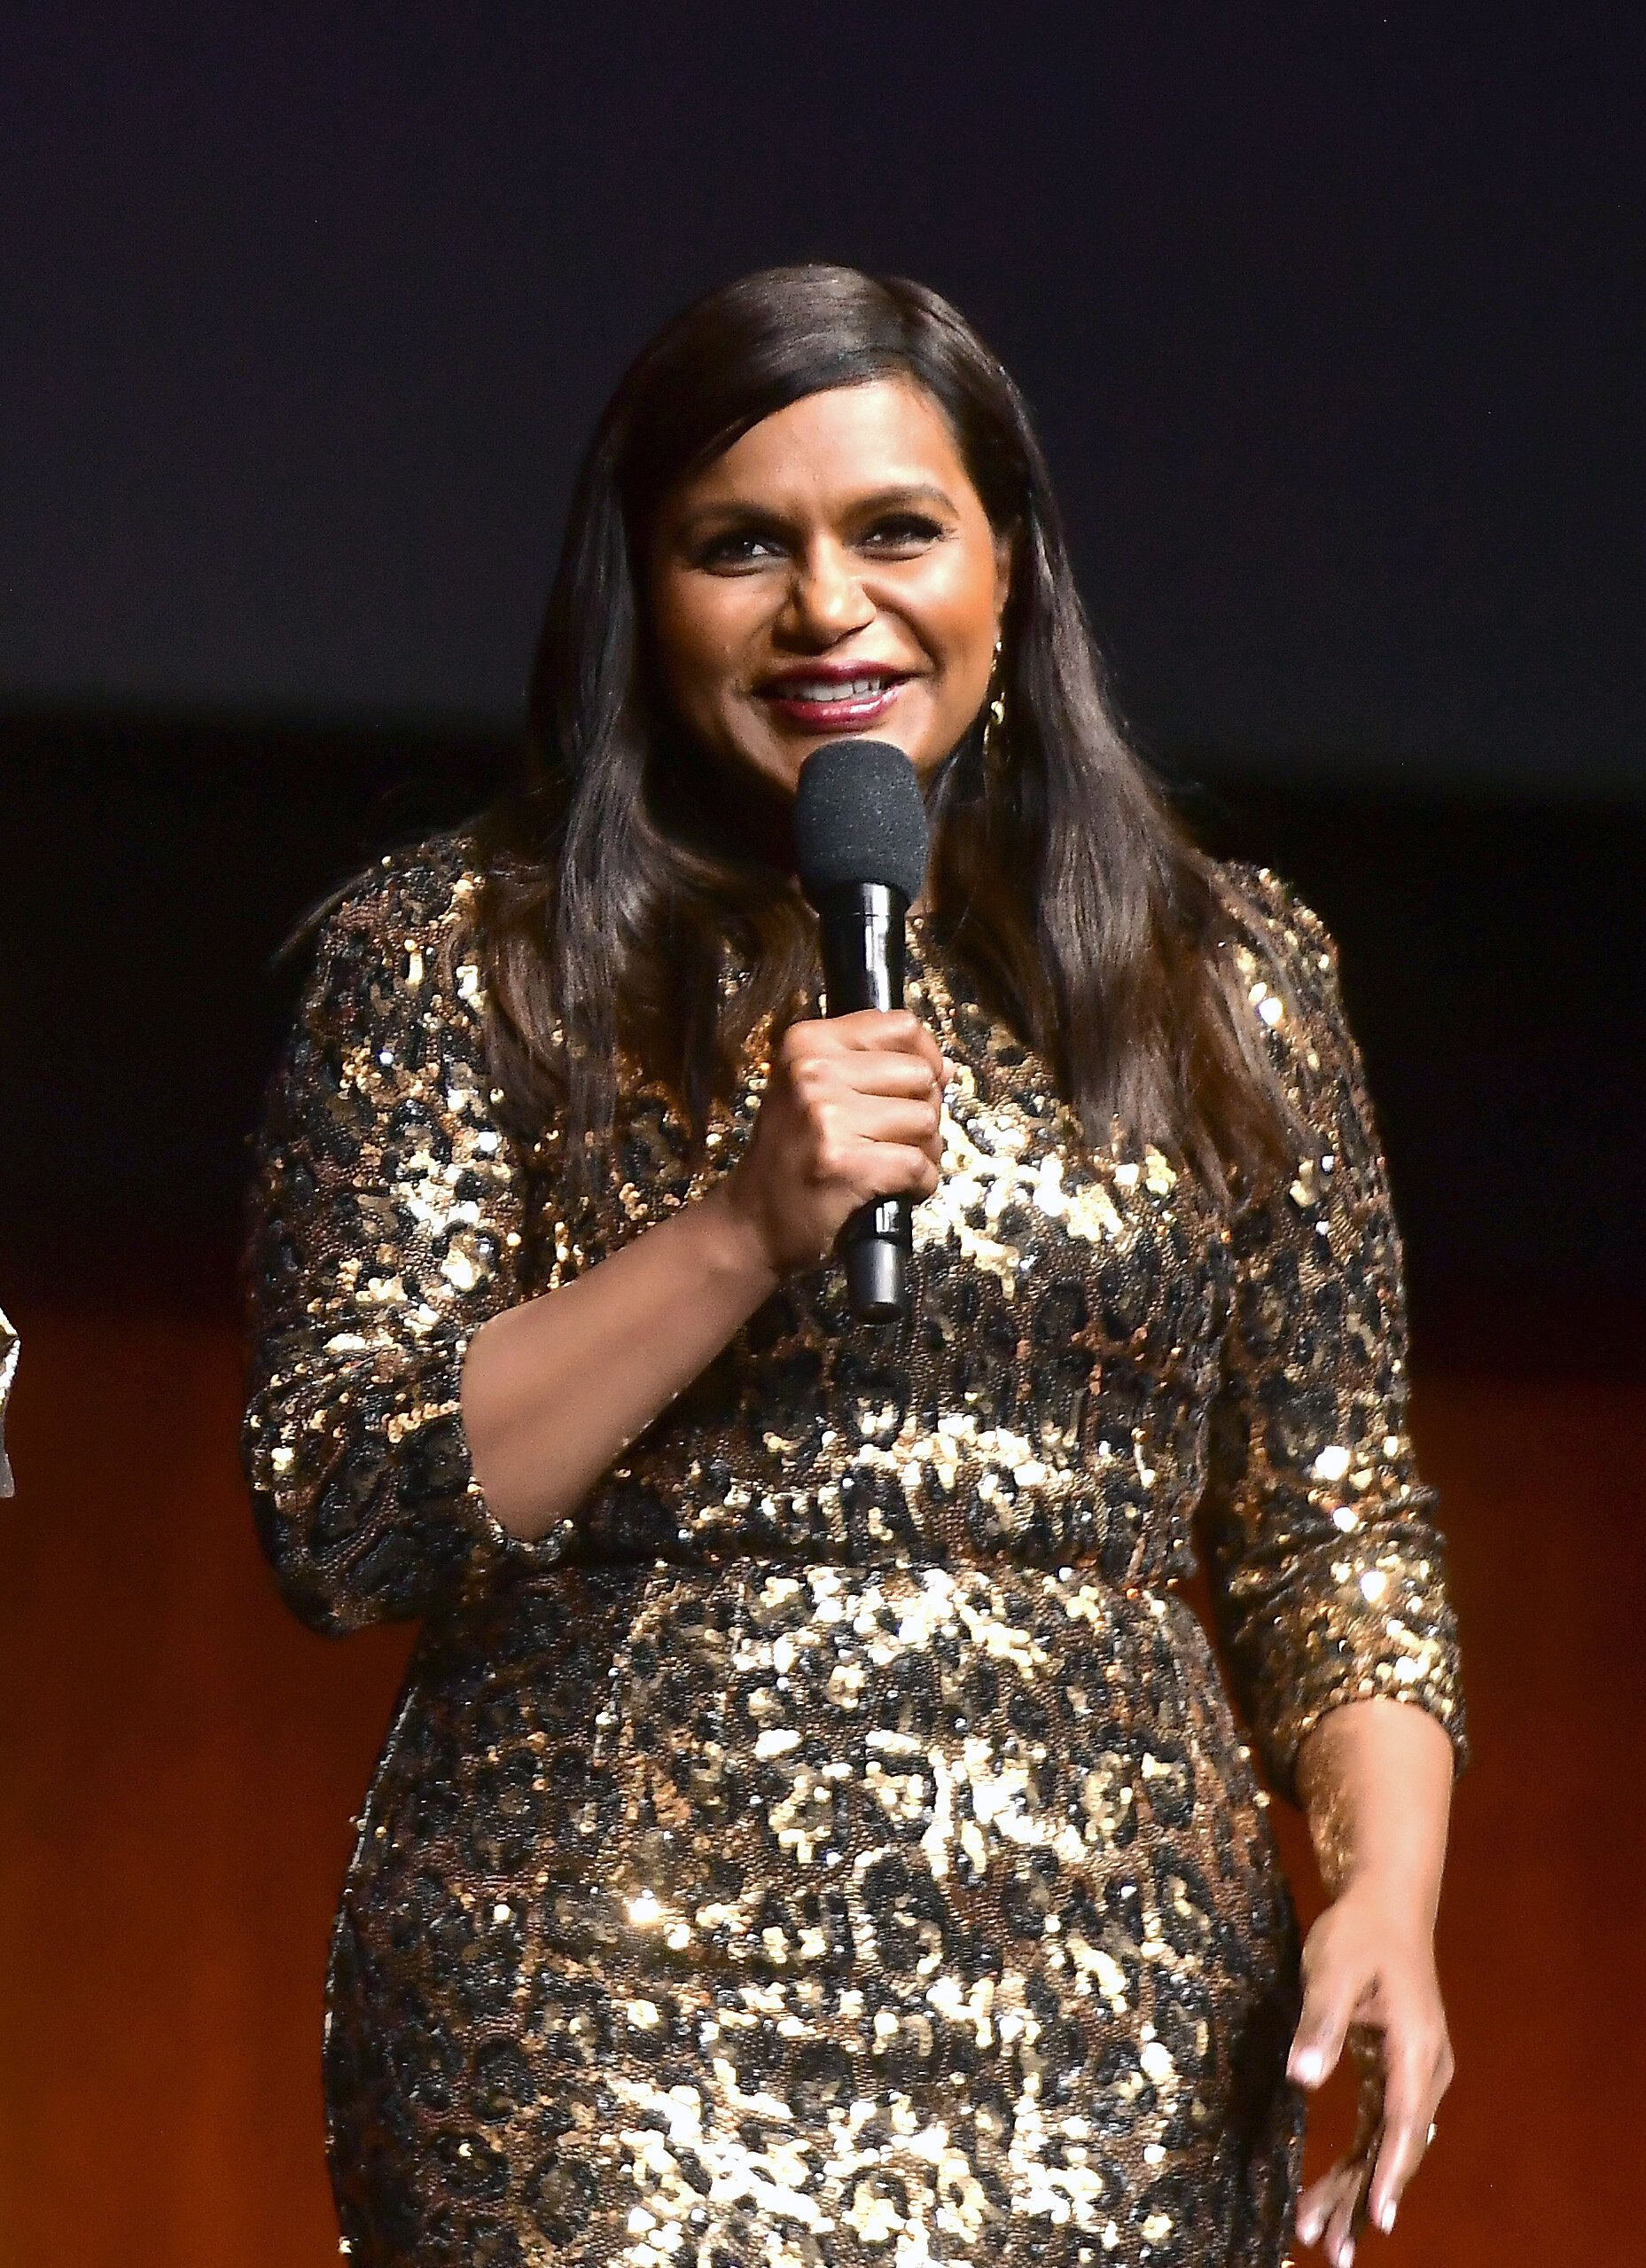 "LAS VEGAS, NV - APRIL 03:  Mindy Kaling speaks onstage at CinemaCon 2019- Amazon Studios Invites You to an Exclusive Screening of ""Late Night"" at The Colosseum at Caesars Palace during CinemaCon, the official convention of the National Association of Theatre Owners, on April 3, 2019 in Las Vegas, Nevada.  (Photo by Matt Winkelmeyer/Getty Images for CinemaCon)"